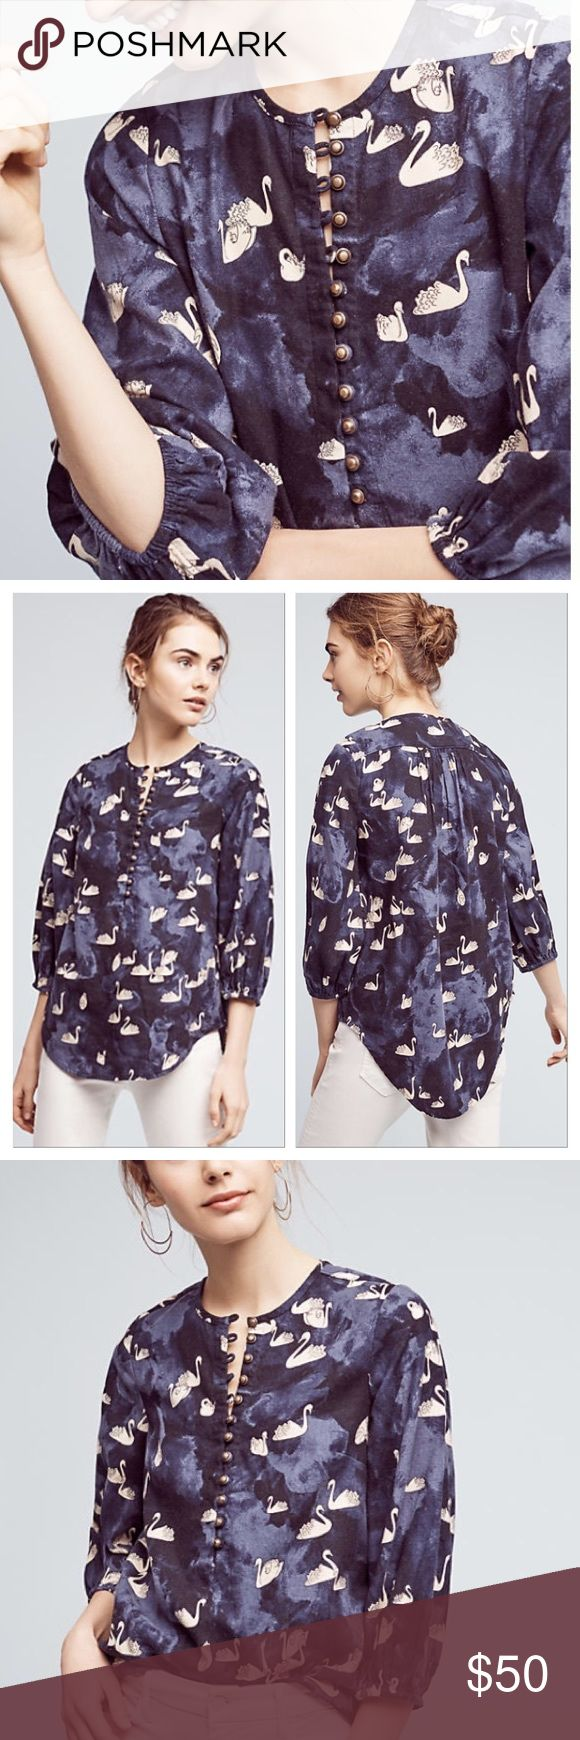 Bethesda Navy Swan Print Flannel Top by Maeve Flannel material. Blousey sleeves and longer length in back. Antique brass buttons. Unique swan print. New with tags. Size small. Anthropologie Tops